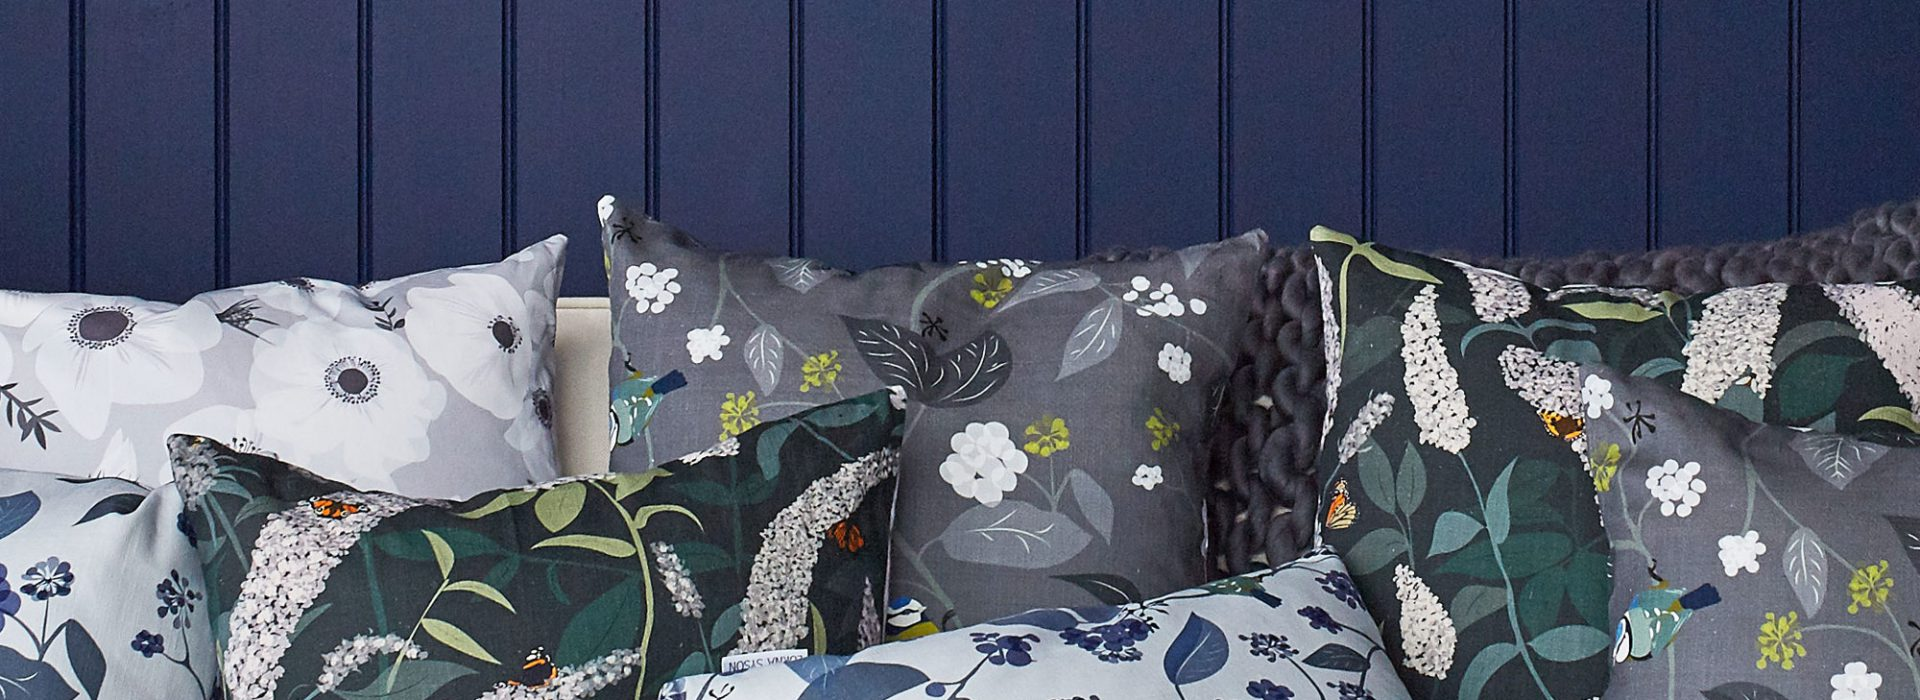 Lorna Syson launching new midnight garden collection at top drawer a/w 2017